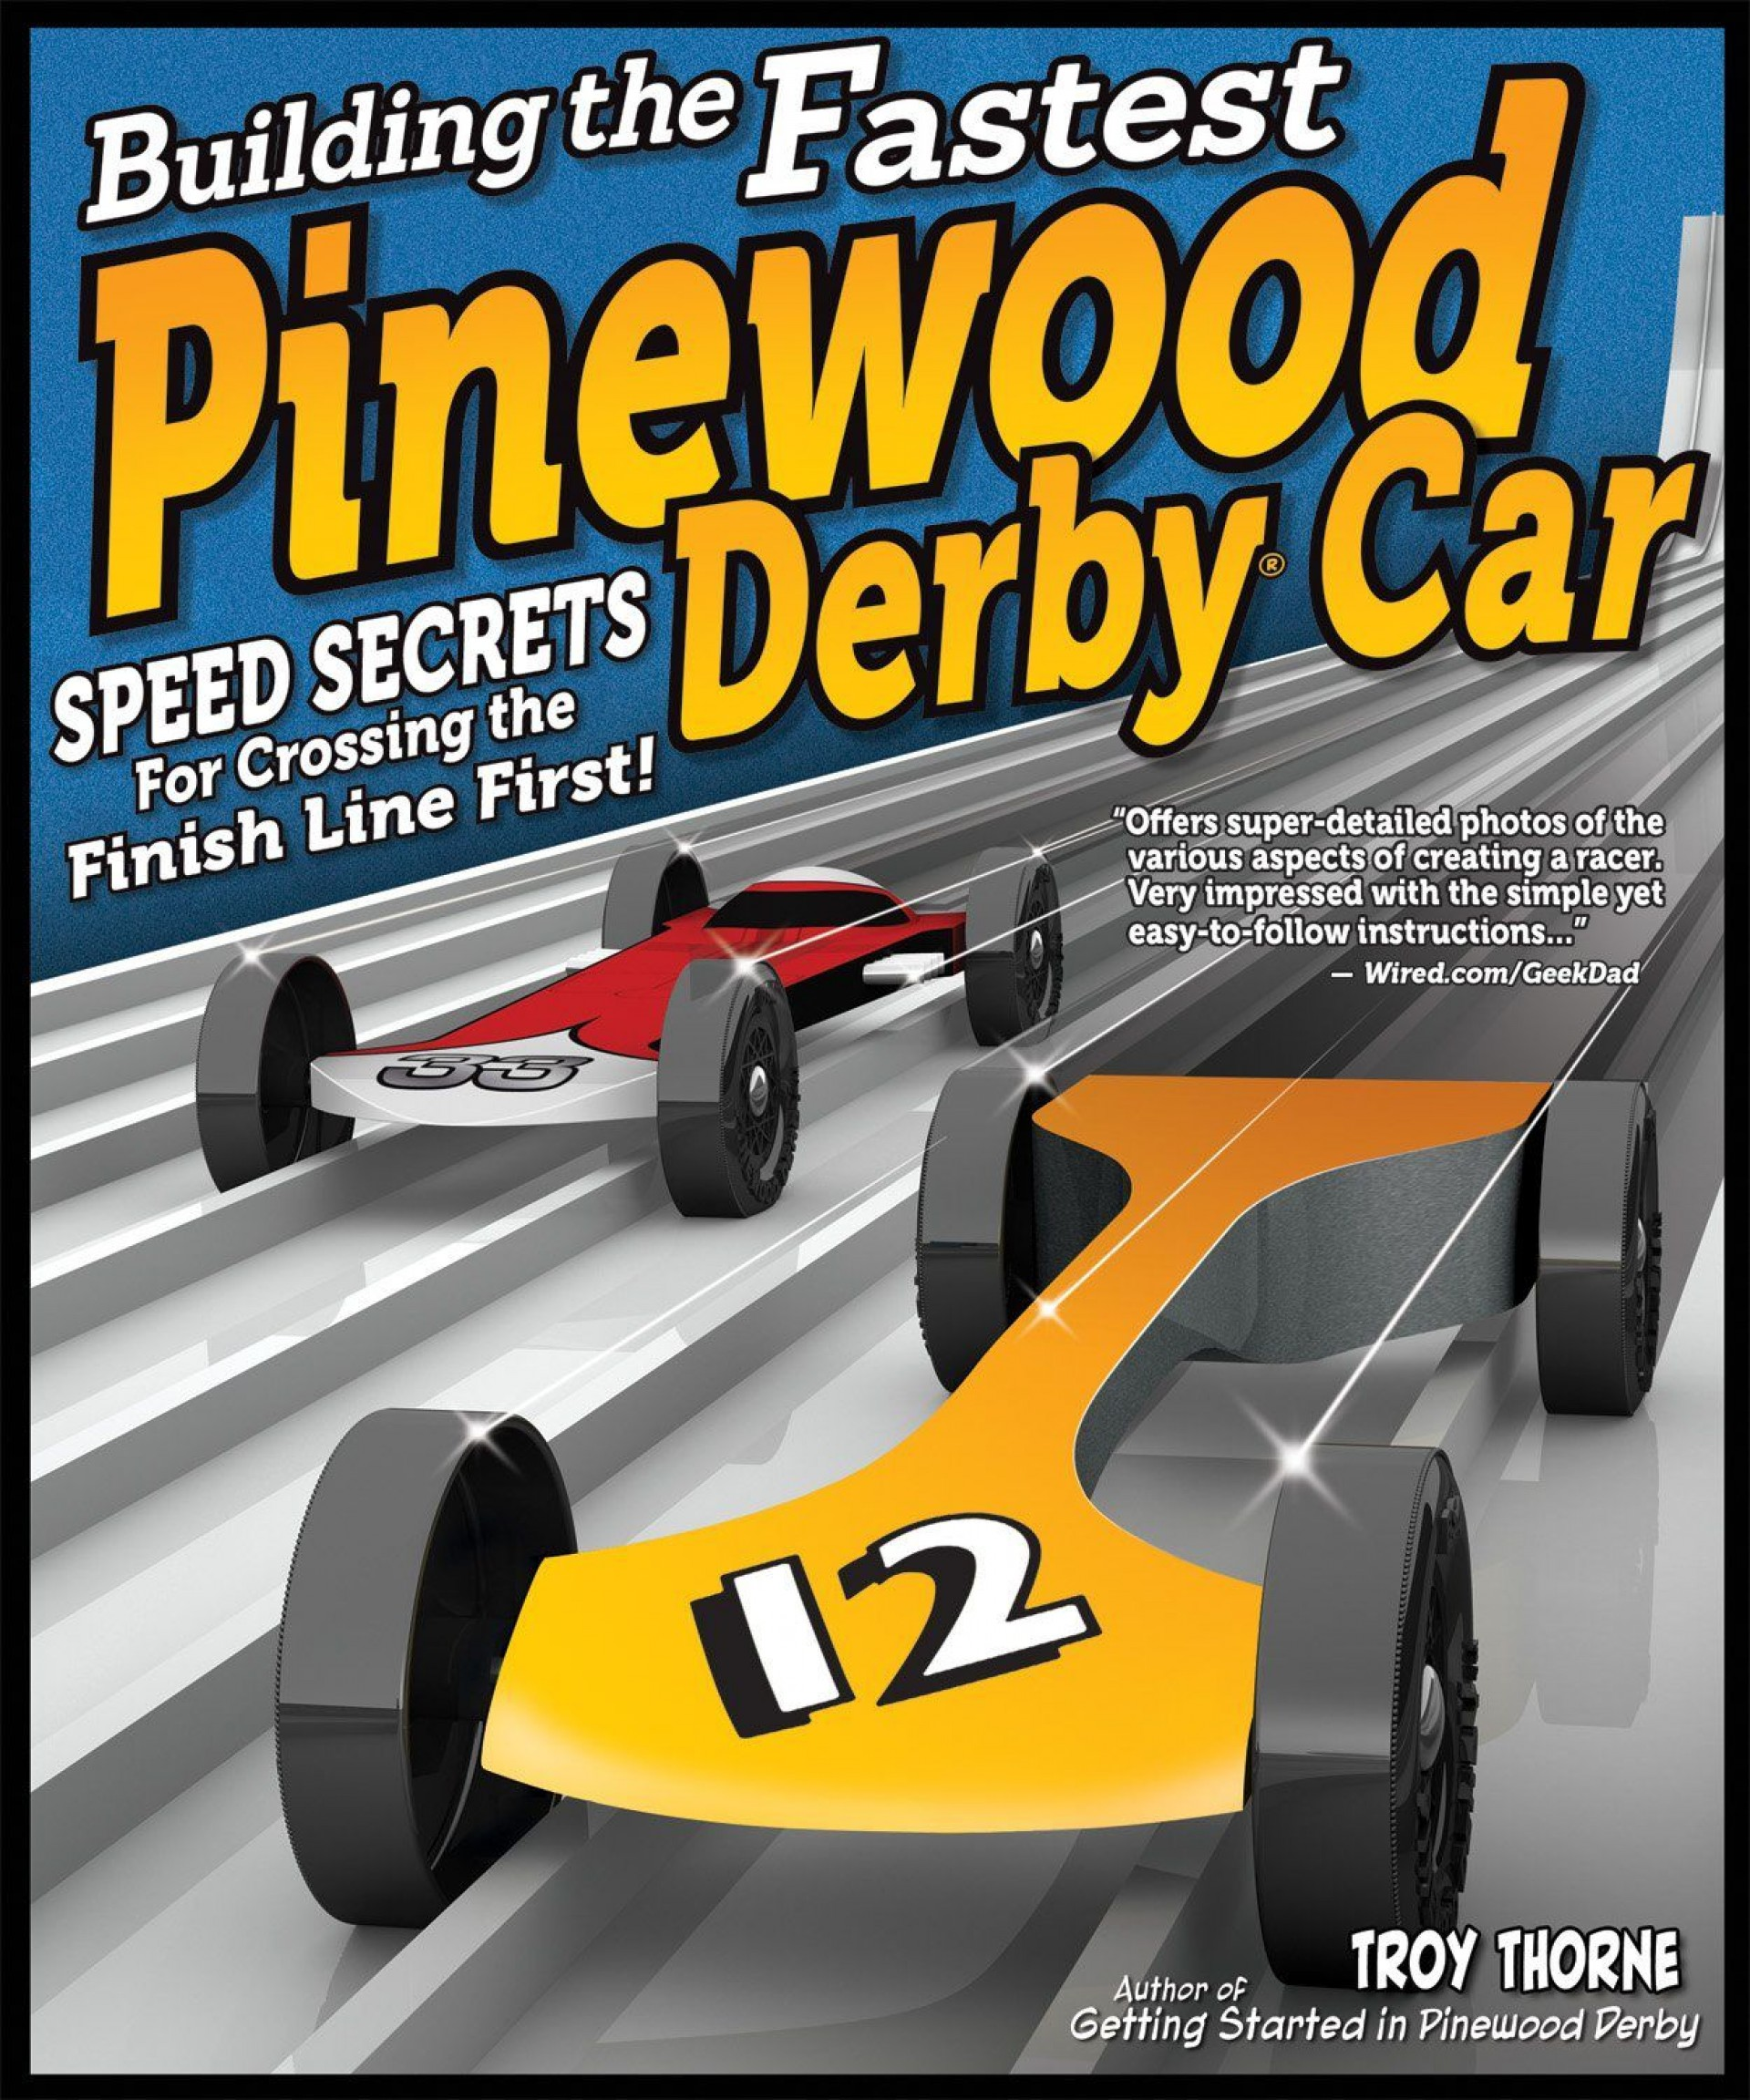 001 Fascinating Fast Pinewood Derby Car Template High Definition  Templates Design Fastest1920